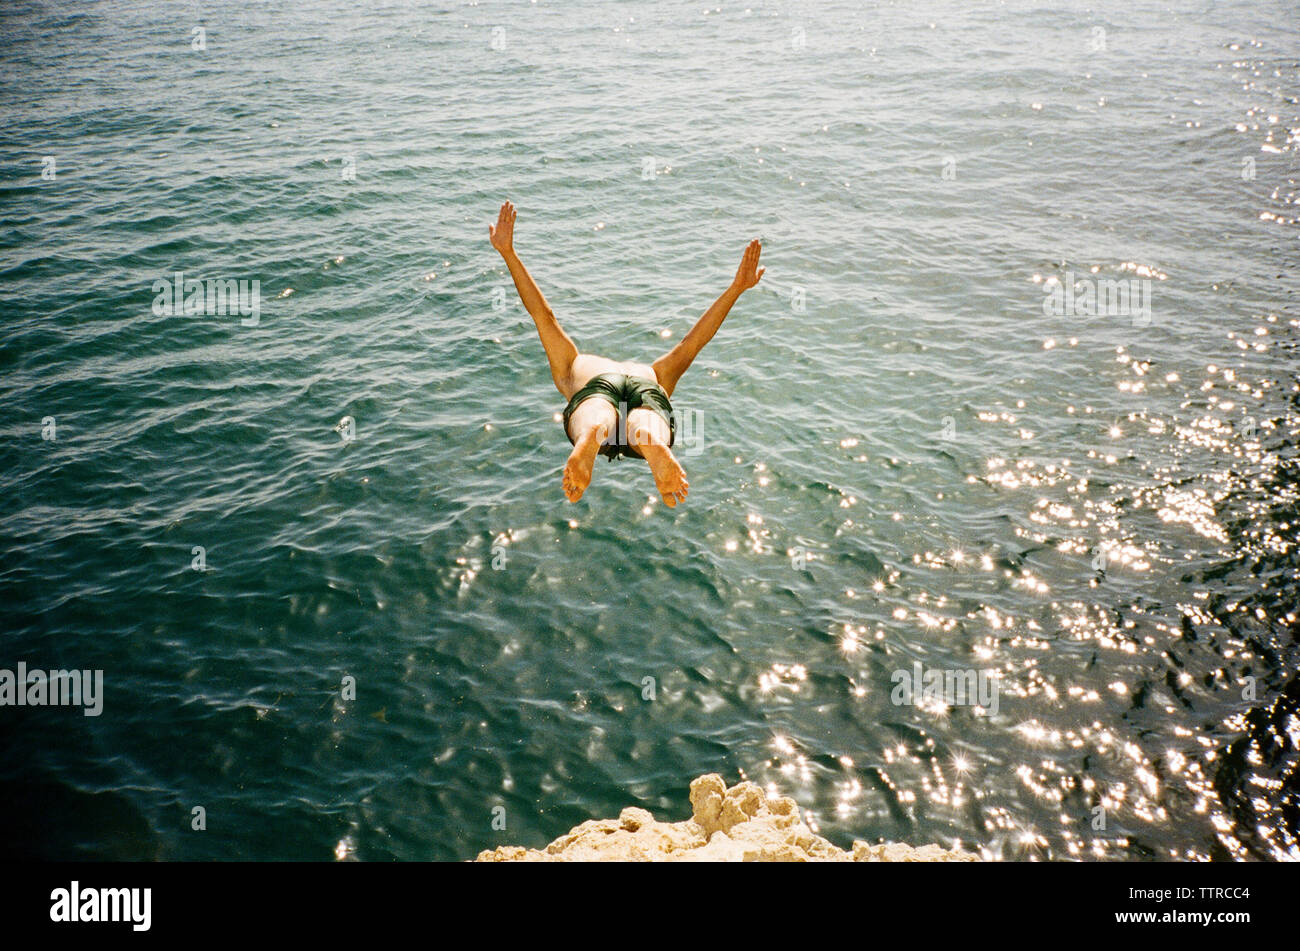 High angle view of man diving into sea - Stock Image